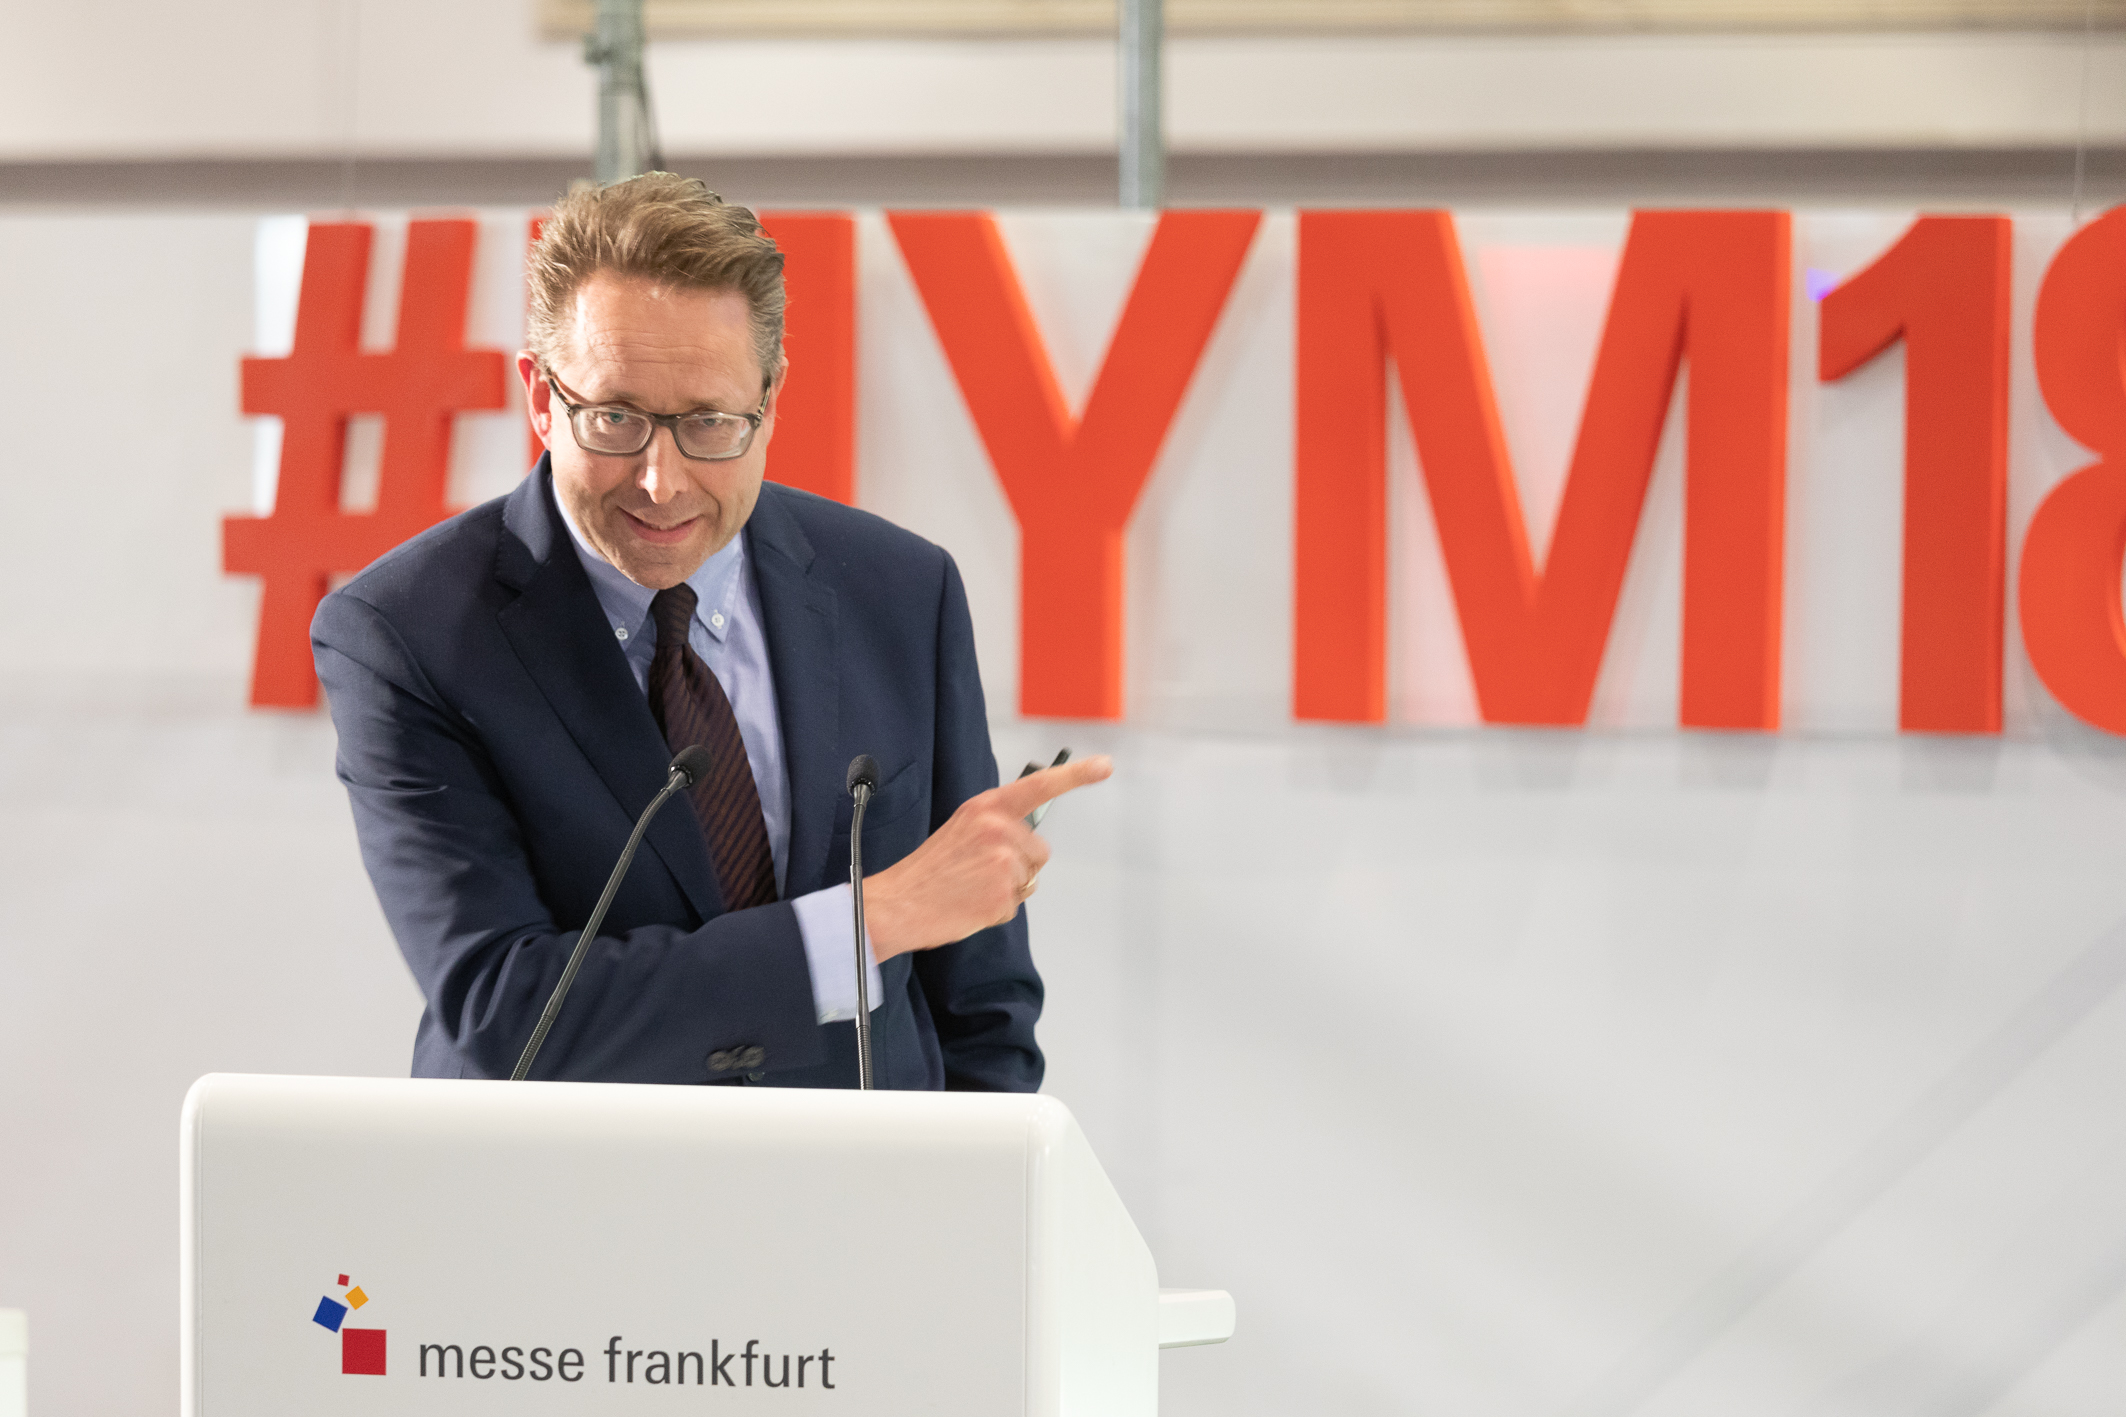 MESSE FRANKFURT HYPERMOTION 2018